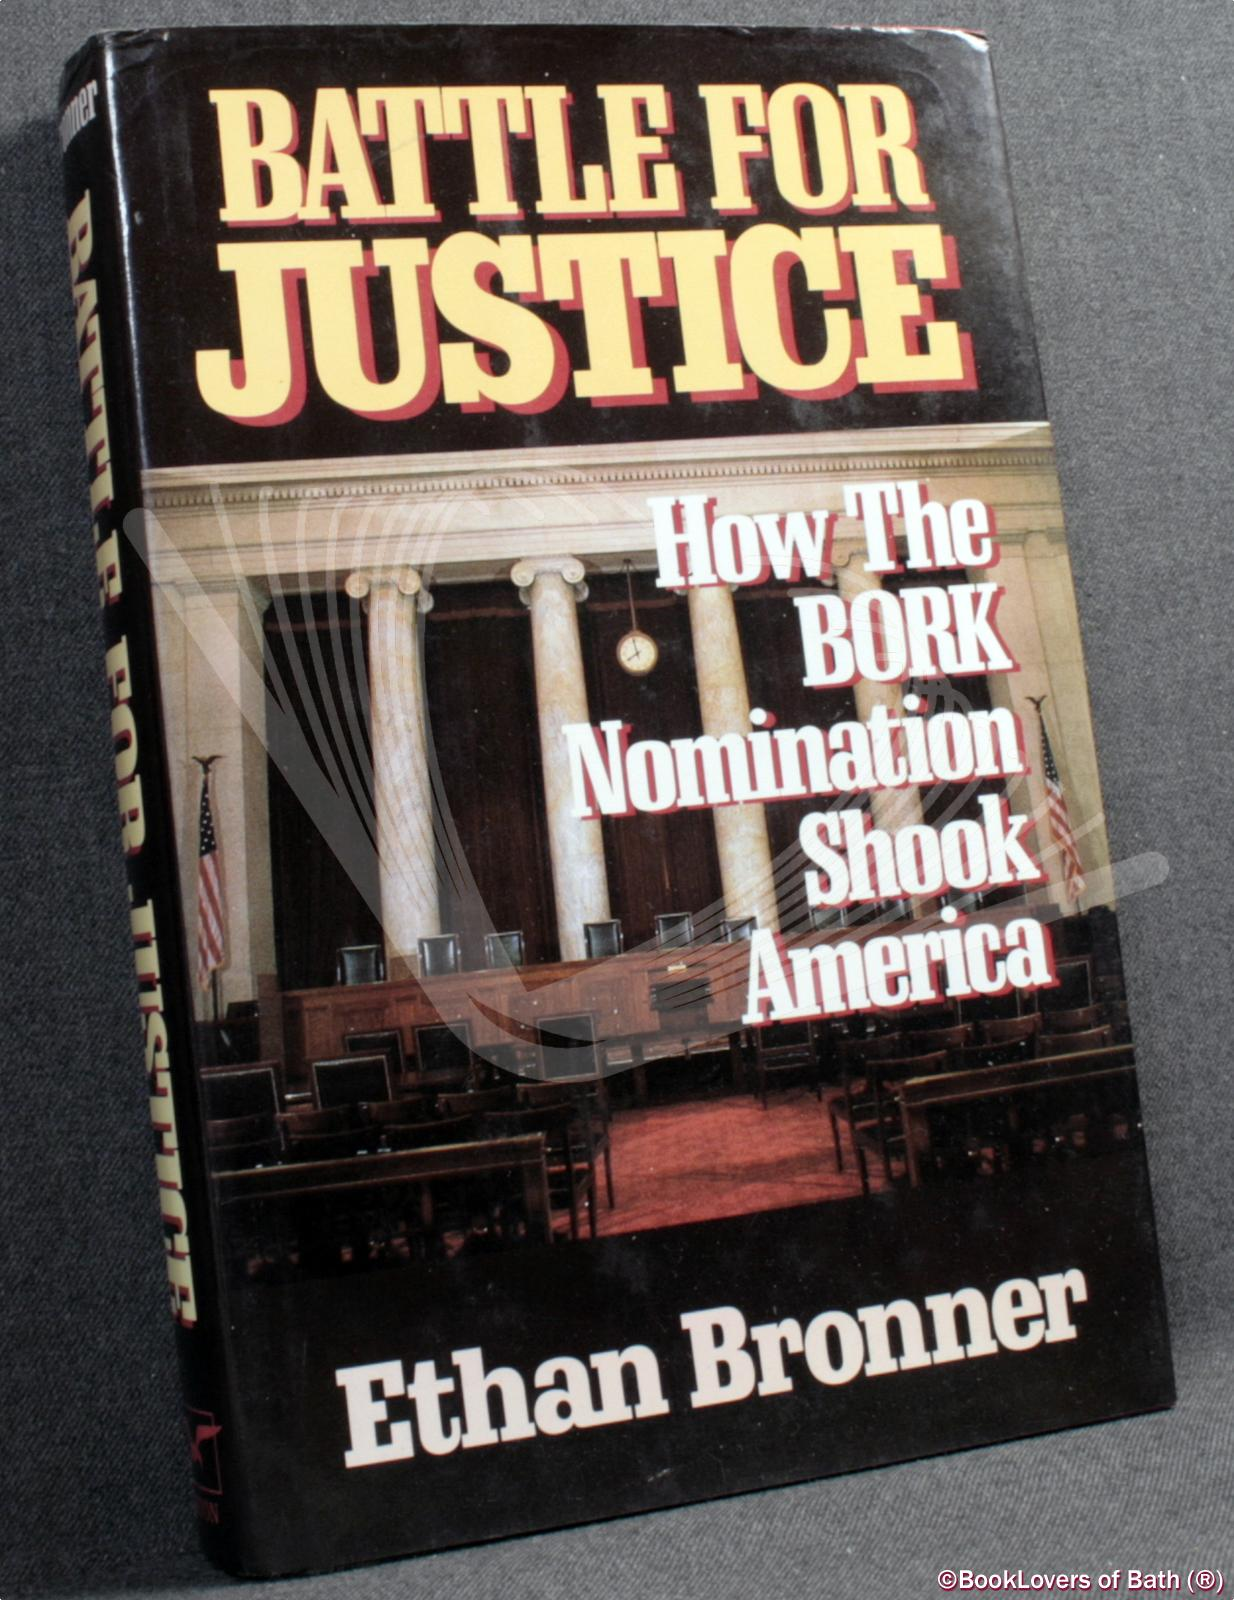 Battle for Justice: How the Bork Nomination Shook America - Ethan Bronner